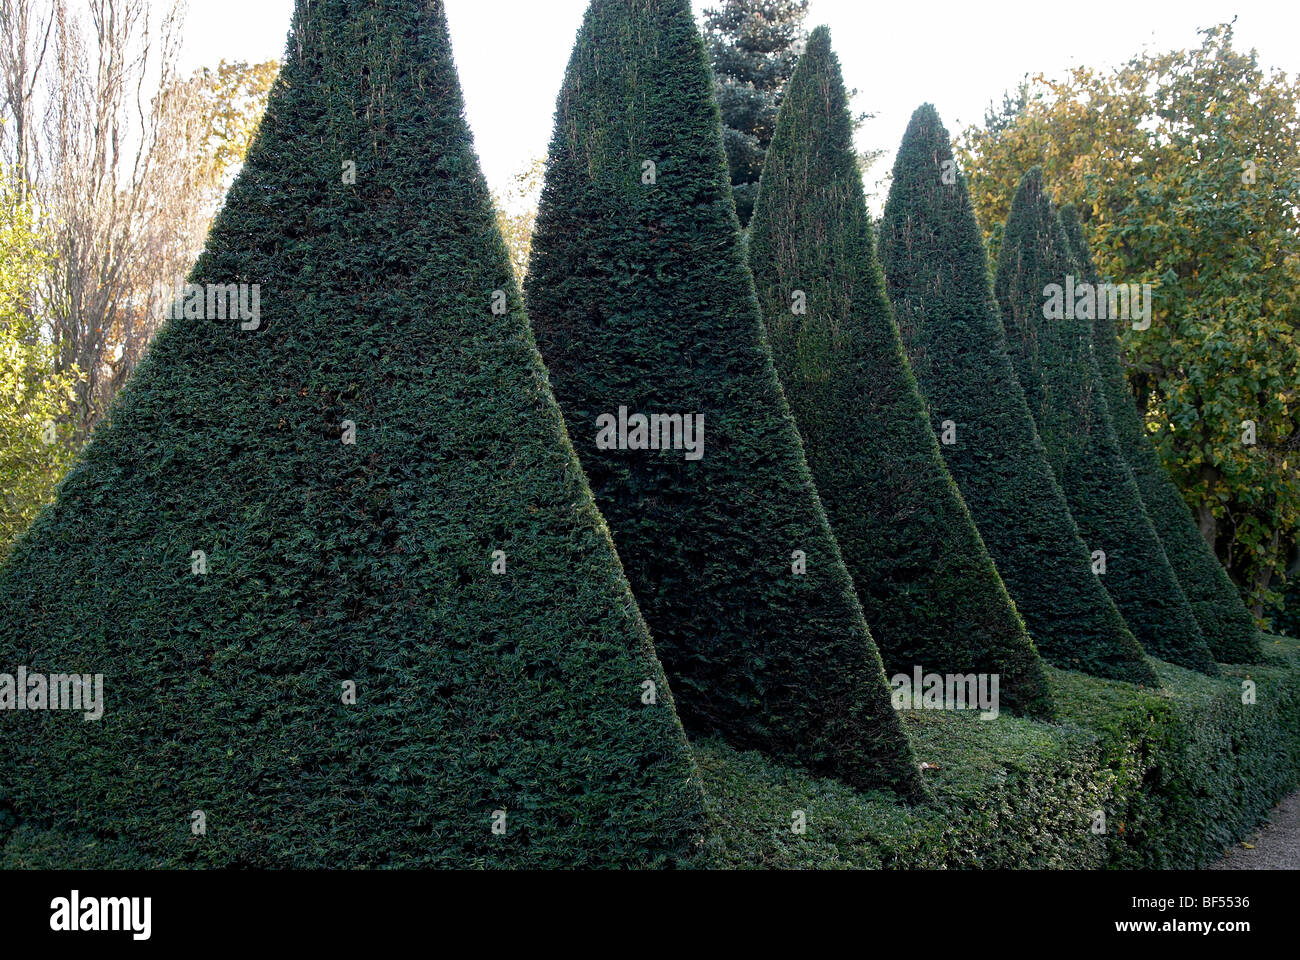 A beautiful series of clipped Yew structures forming part of a garden at Adel near Leeds - Stock Image